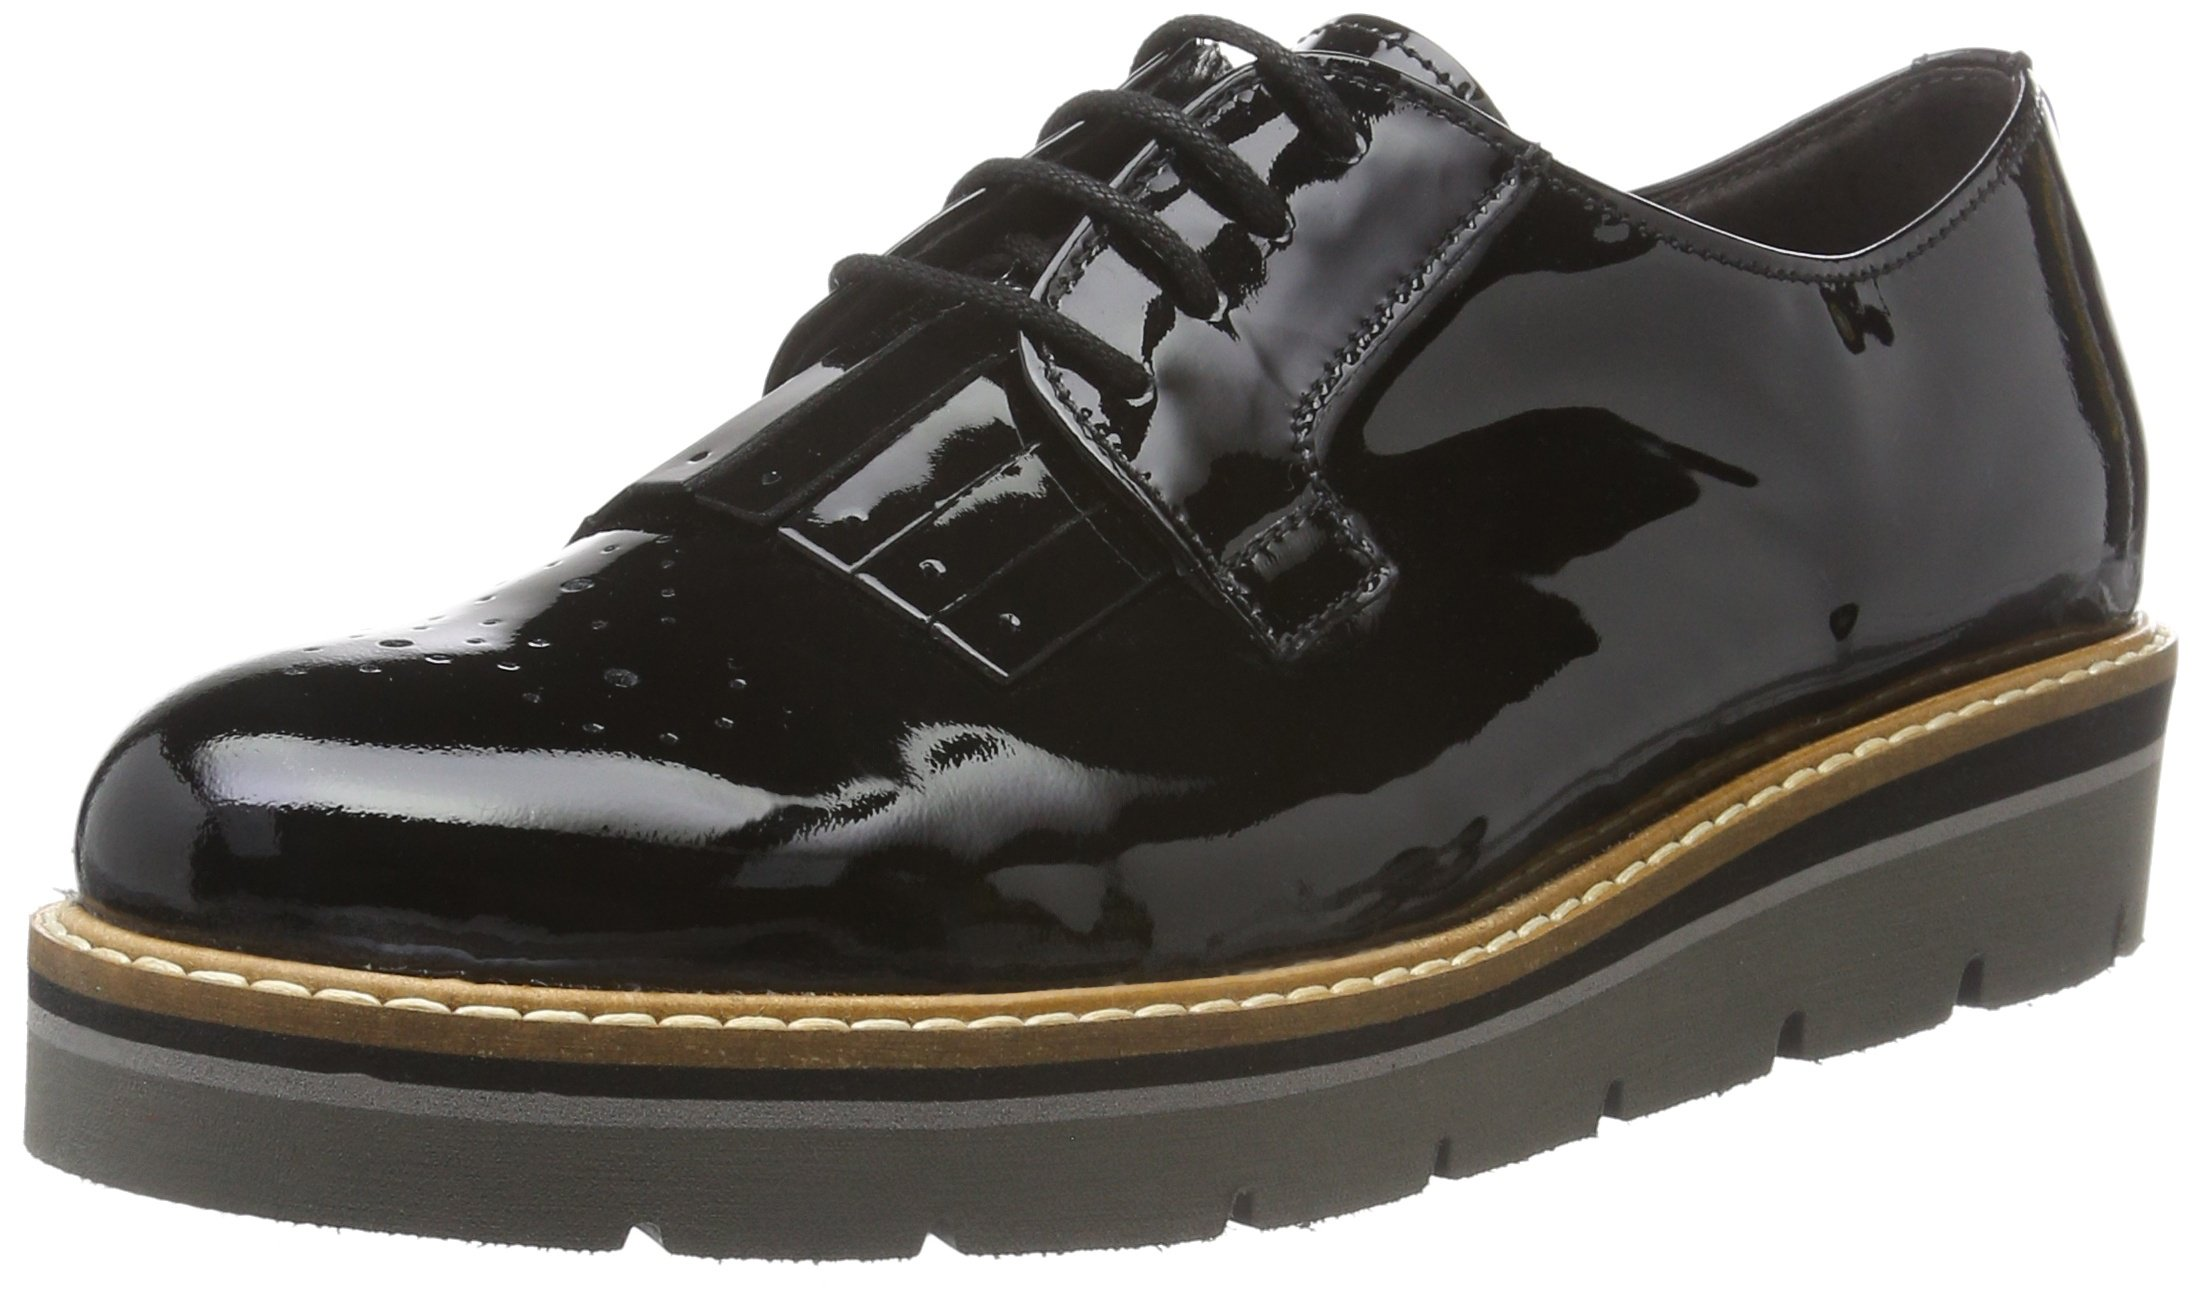 Oxford Gabor 474 5 51 Shoes Eu FemmeNoir40 Pnw0kO